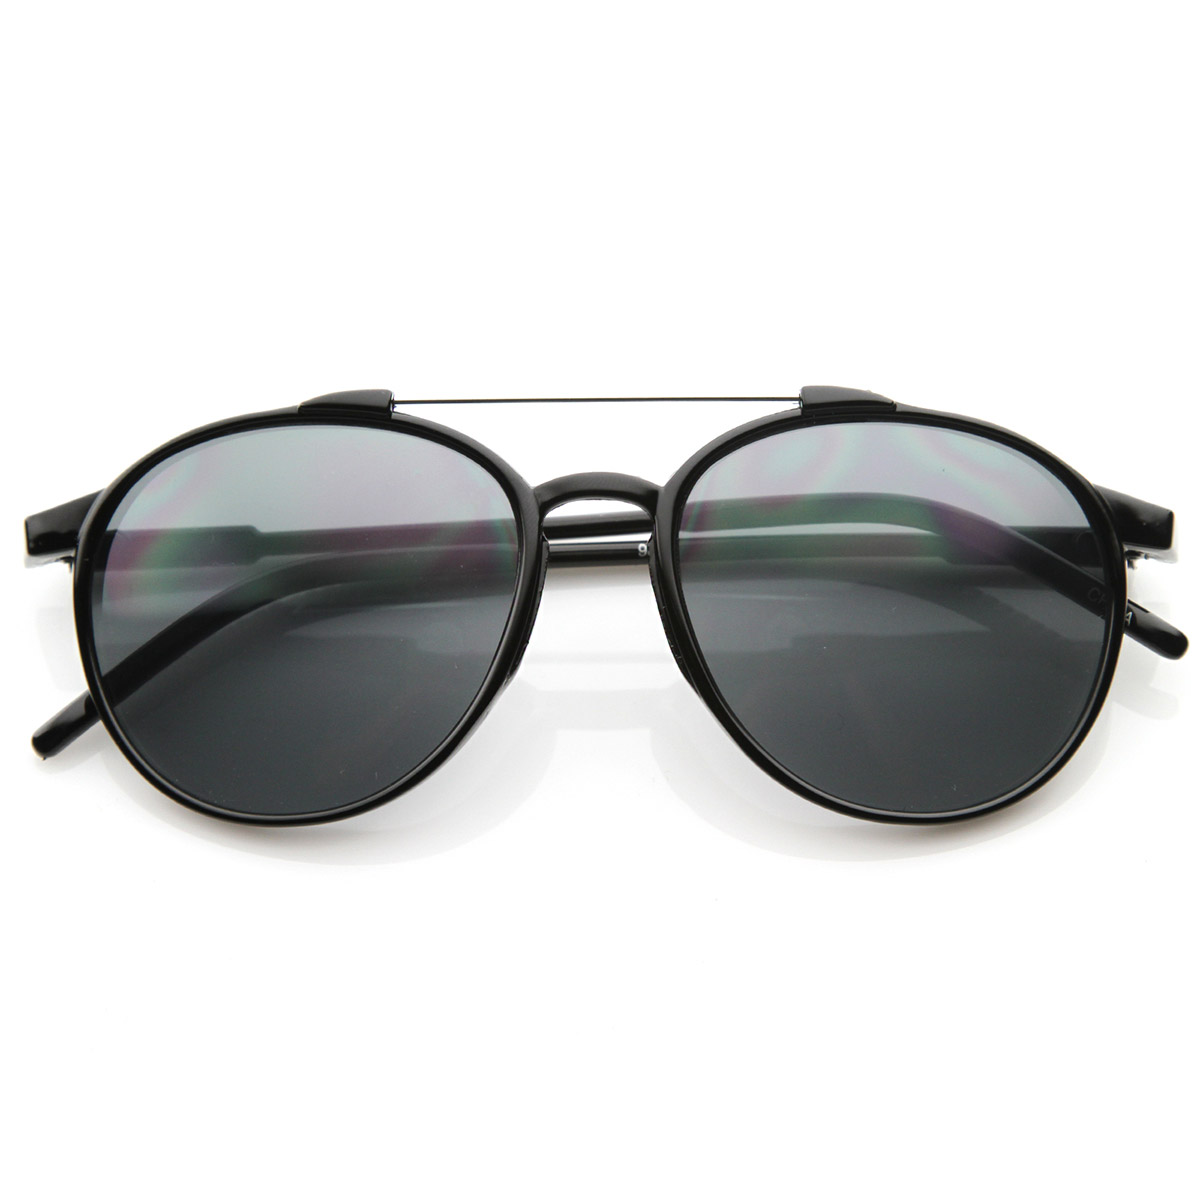 Vintage Inspired Fashion Classic Round Aviator Sunglasses with Metal Cross Bar